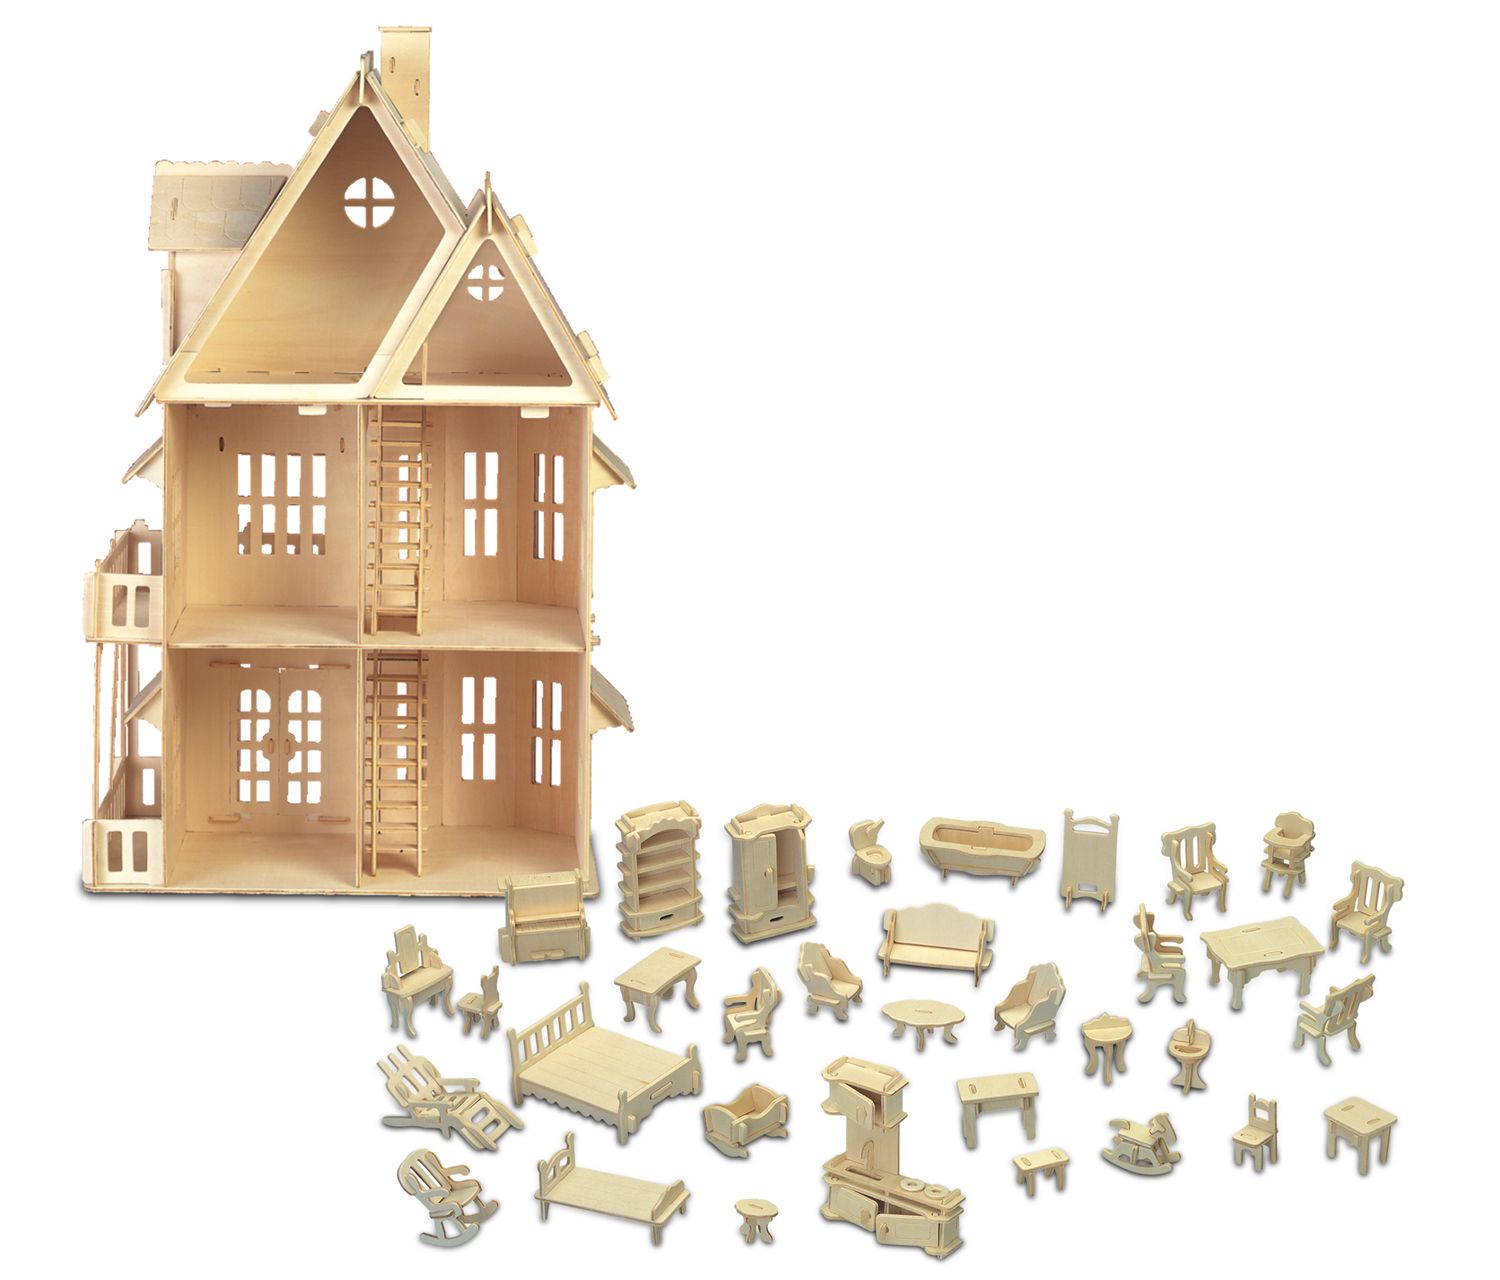 Puzzled Furniture Set and Gothic House Wooden 3D Puzzle Construction Kit by Puzzled Inc